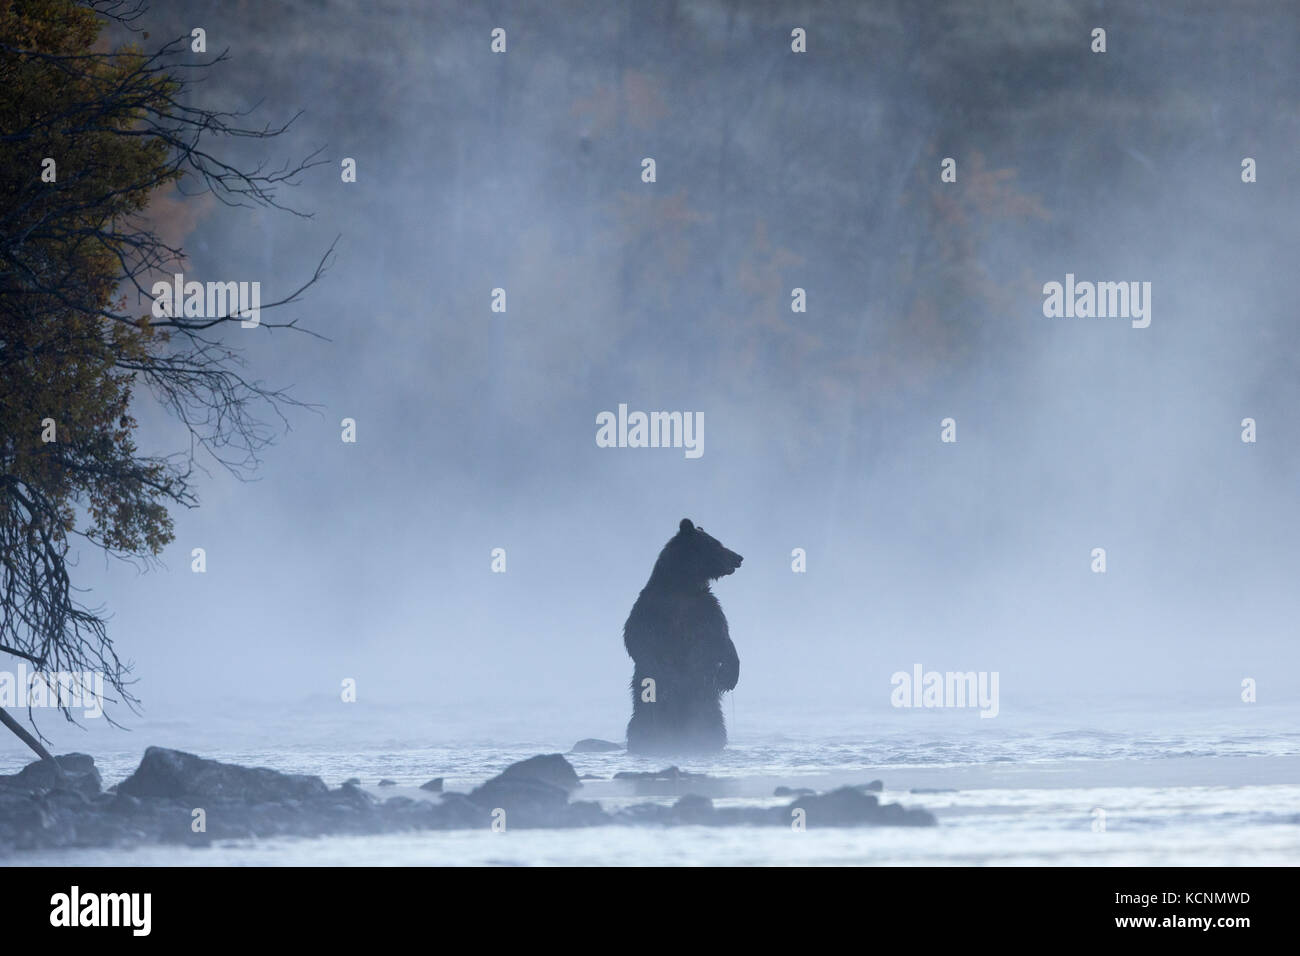 Grizzlybär (Ursus arctos Horribilis), Weibliche im Morgennebel, Chilcotin Region, British Columbia, Kanada. Stockbild